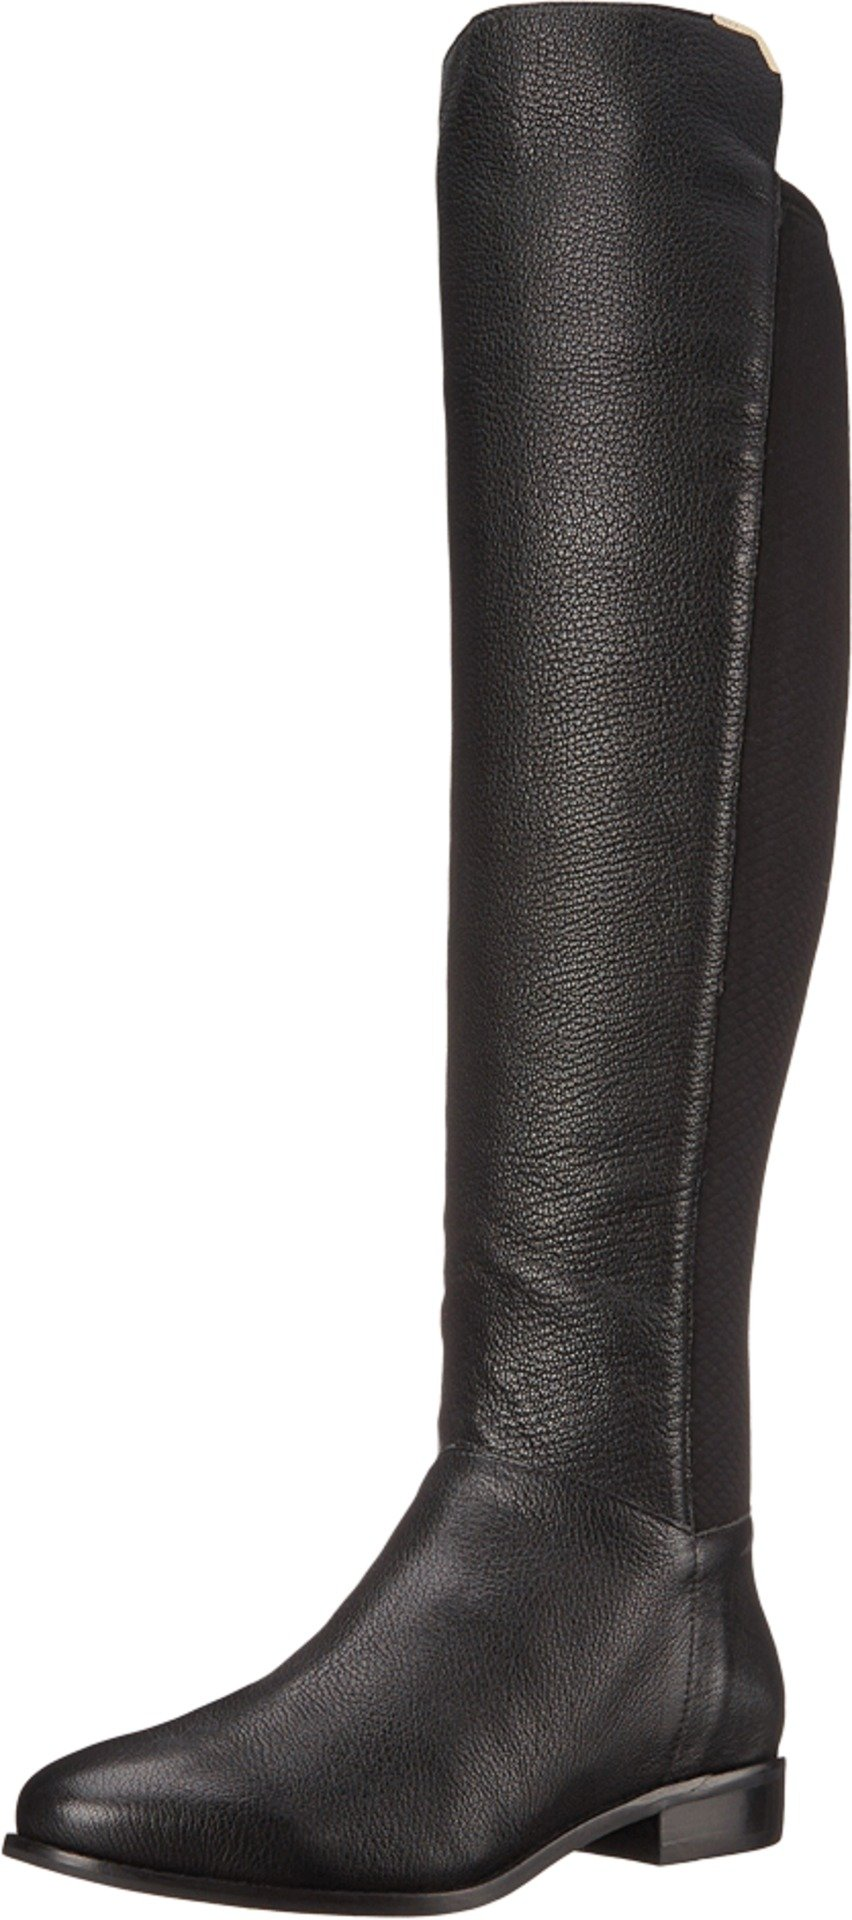 Cole Haan Women's Dutchess OTK Motorcycle Boot, Black Leather, 7 B US